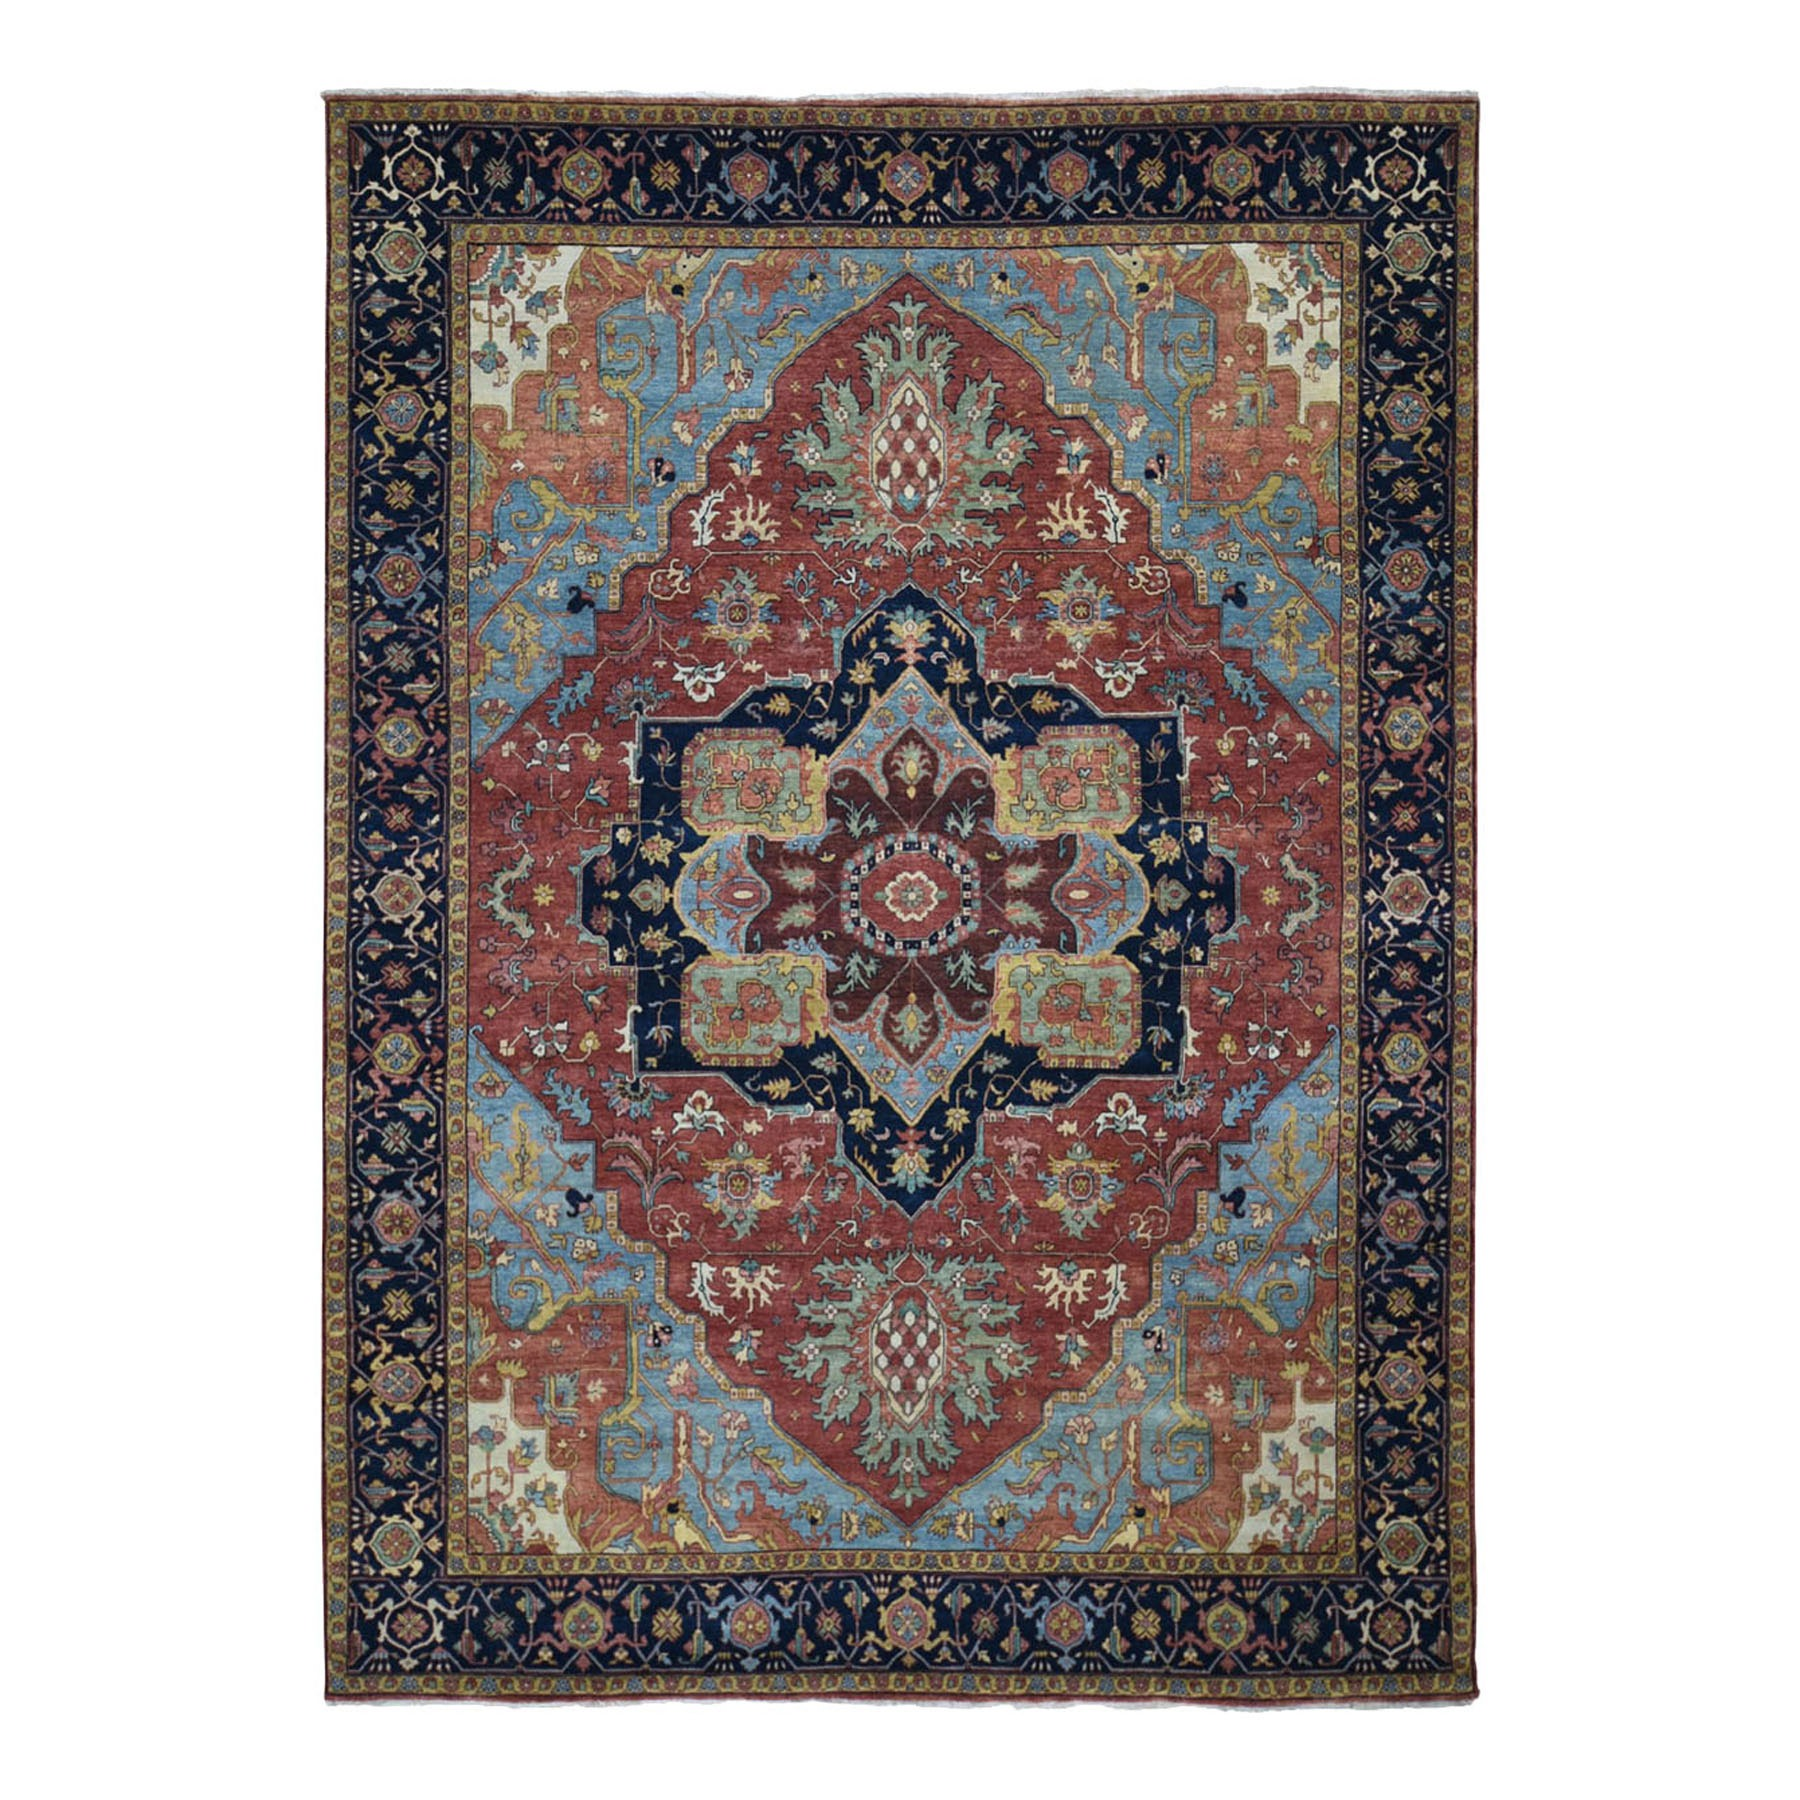 "9'1""x12' Antiqued Heriz Re-creation Pure Wool Hand Knotted Oriental Rug 48433"